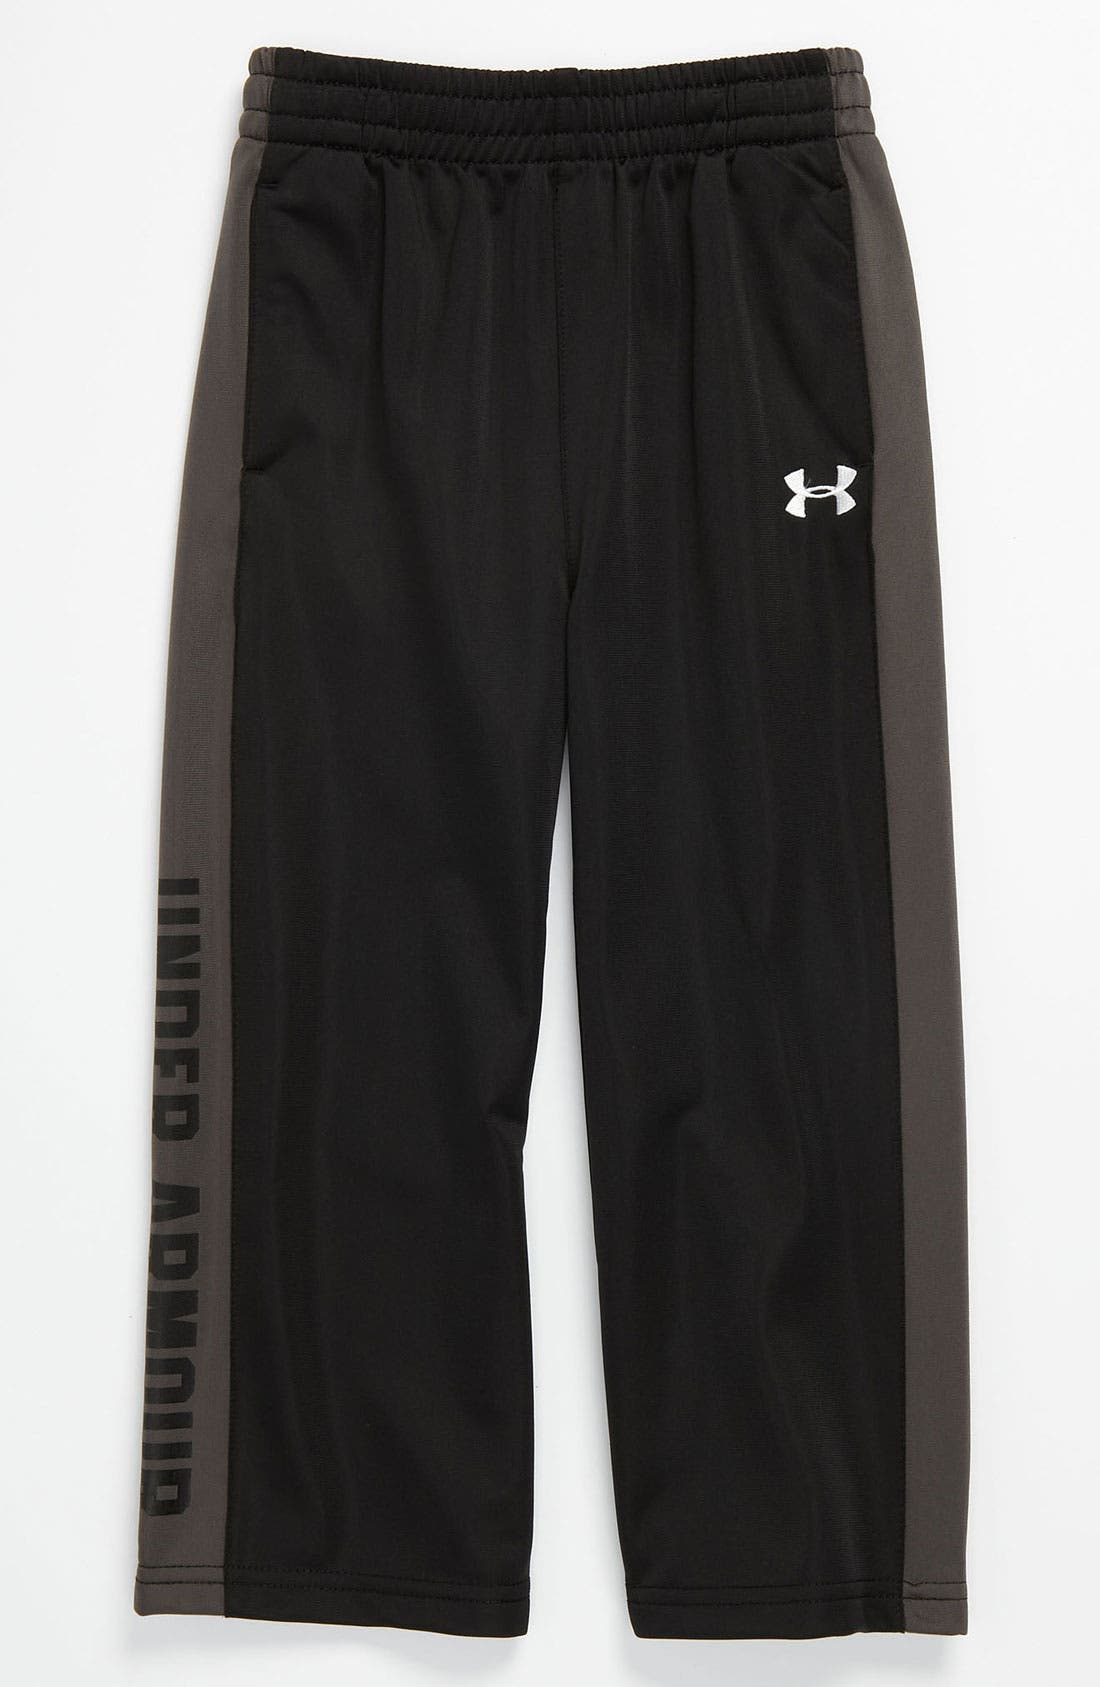 Main Image - Under Armour Tricot Pants (Toddler)